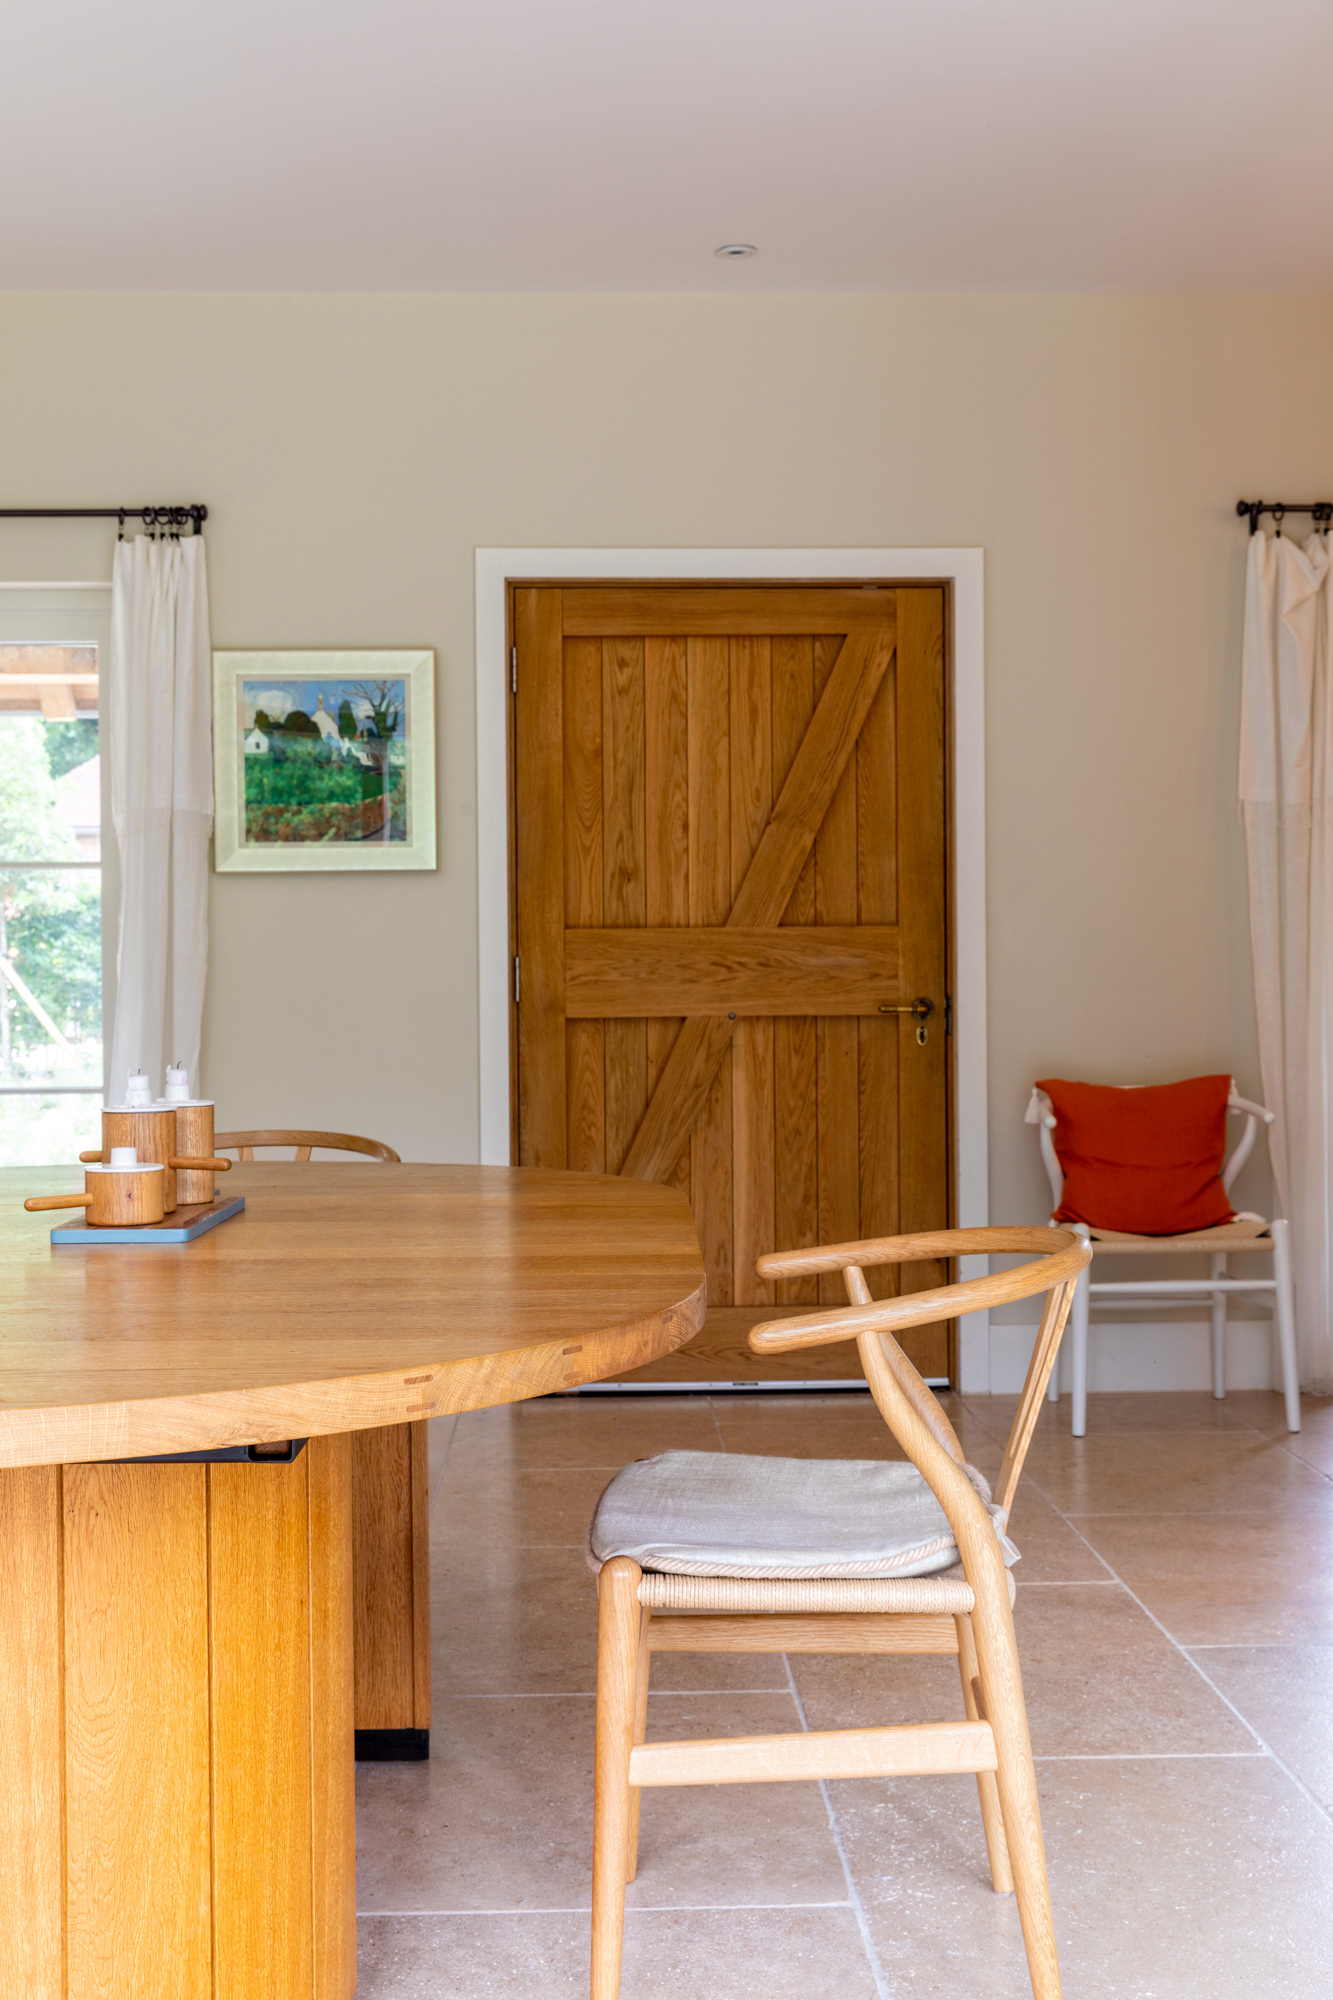 Country house living room photo: wooden table and chairs; wooden country door on the background